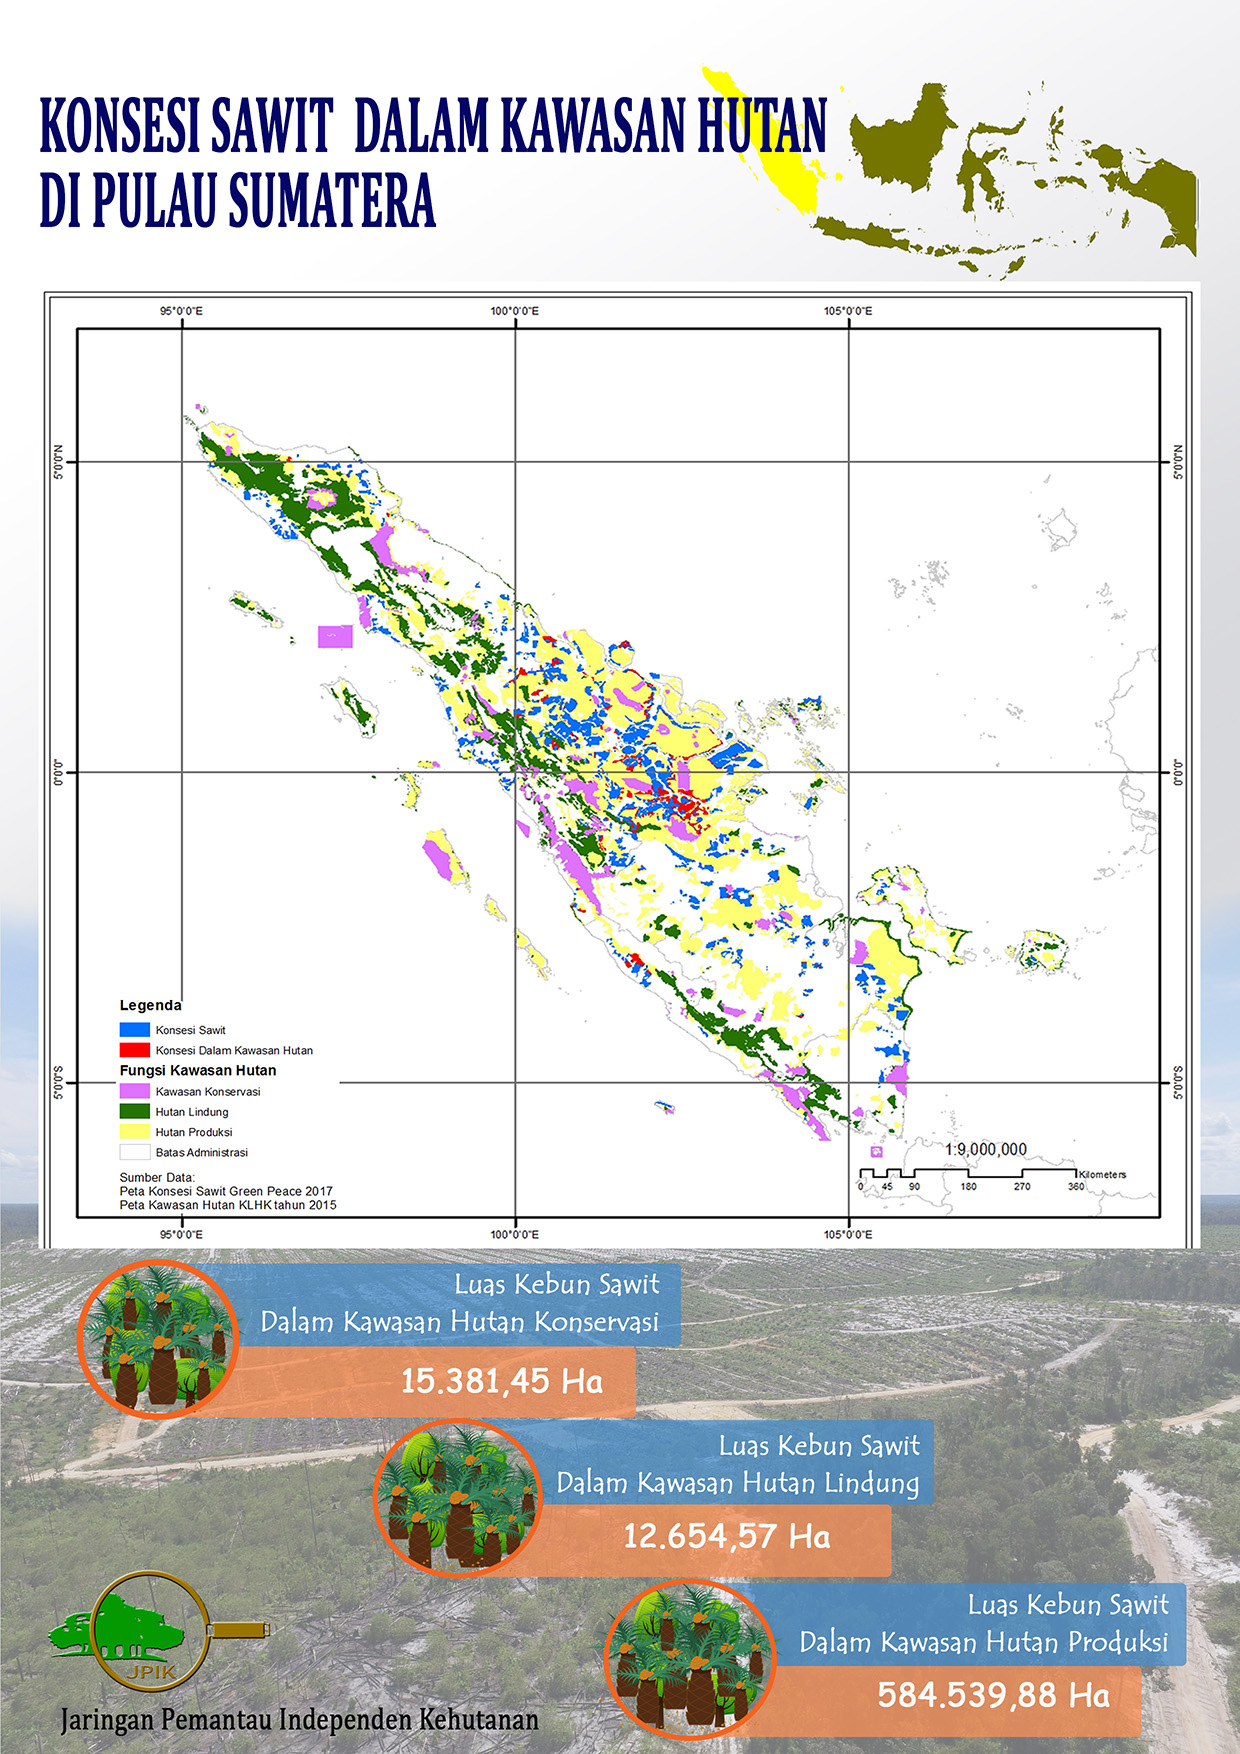 Oil Palm Concessions in Forest Areas on Sumatra Island